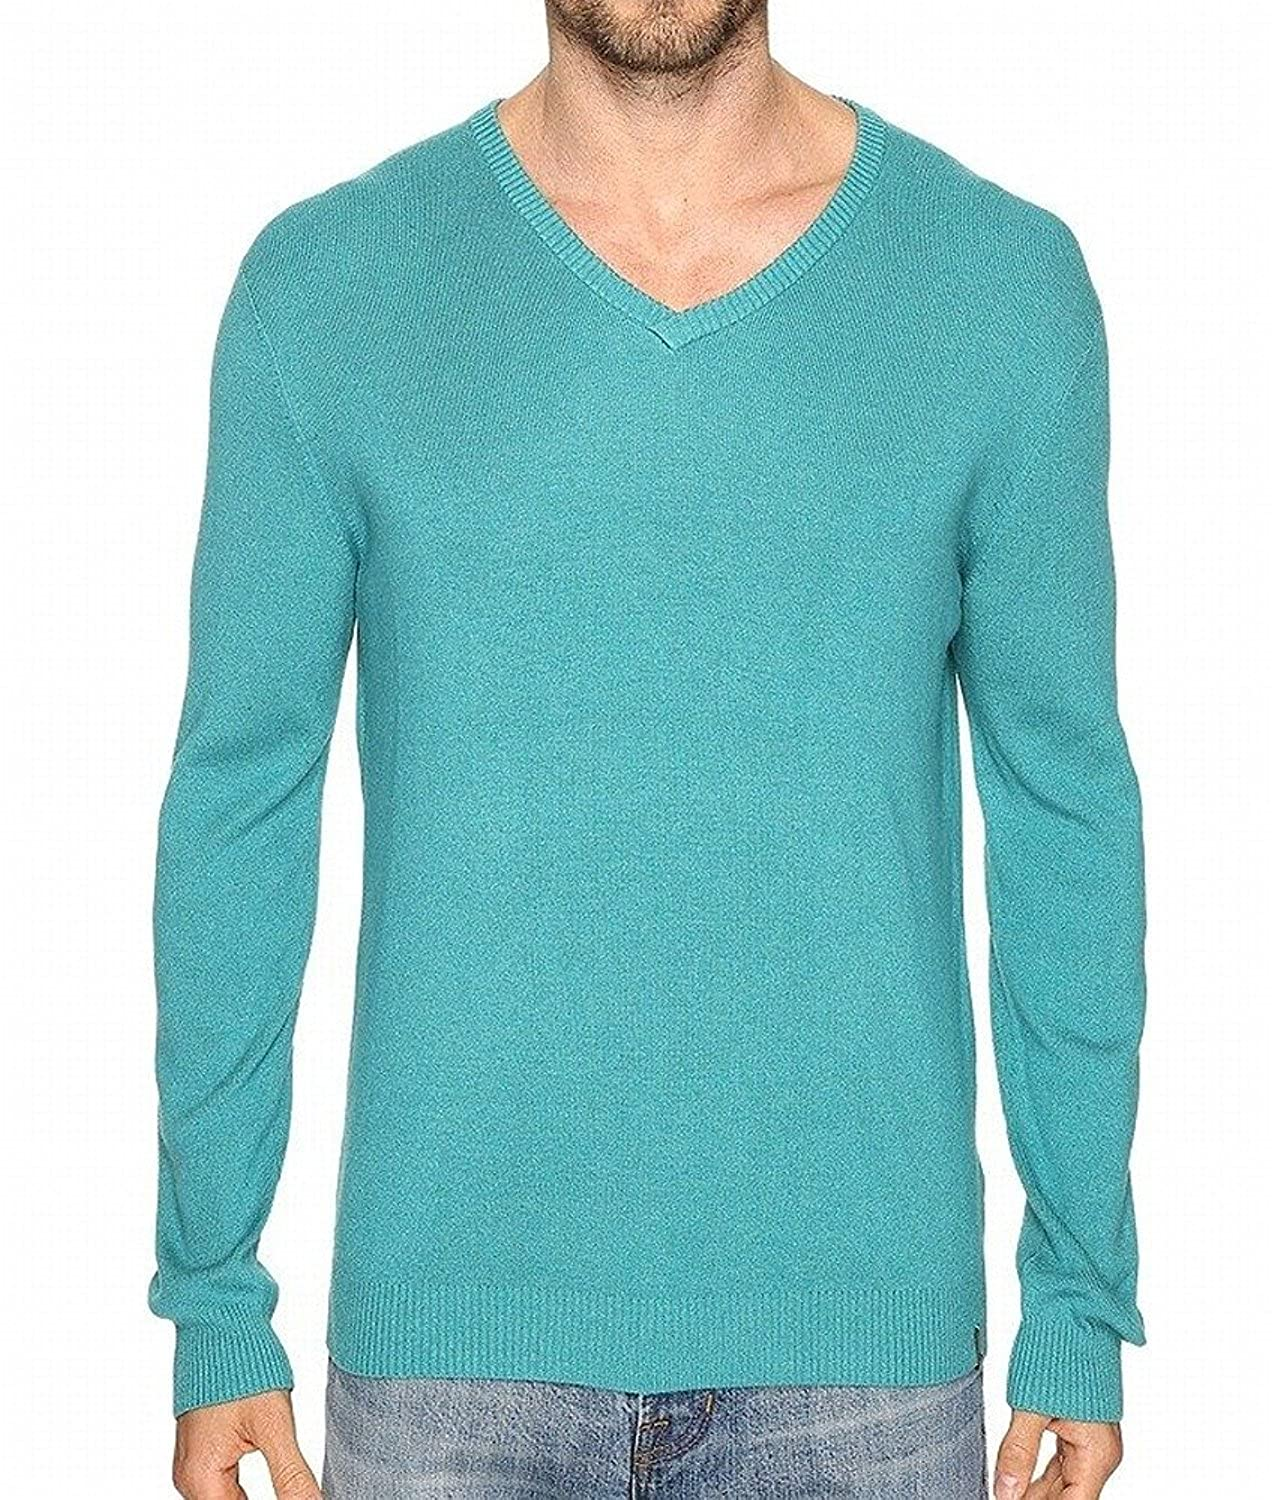 f5d53bc0c50d Top 10 wholesale Modal Sweater - Chinabrands.com